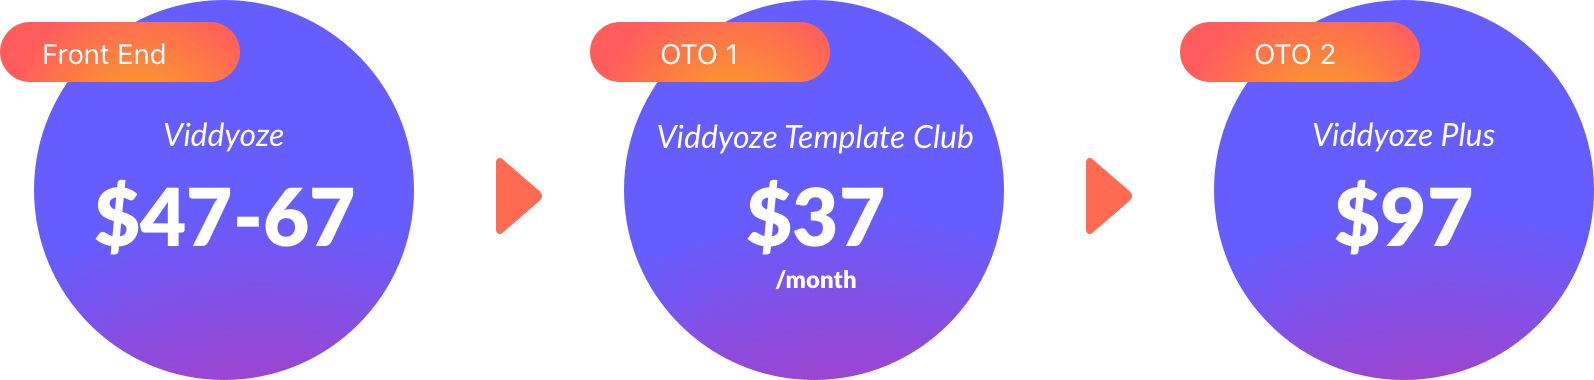 Viddyoze 2.0 Pricing